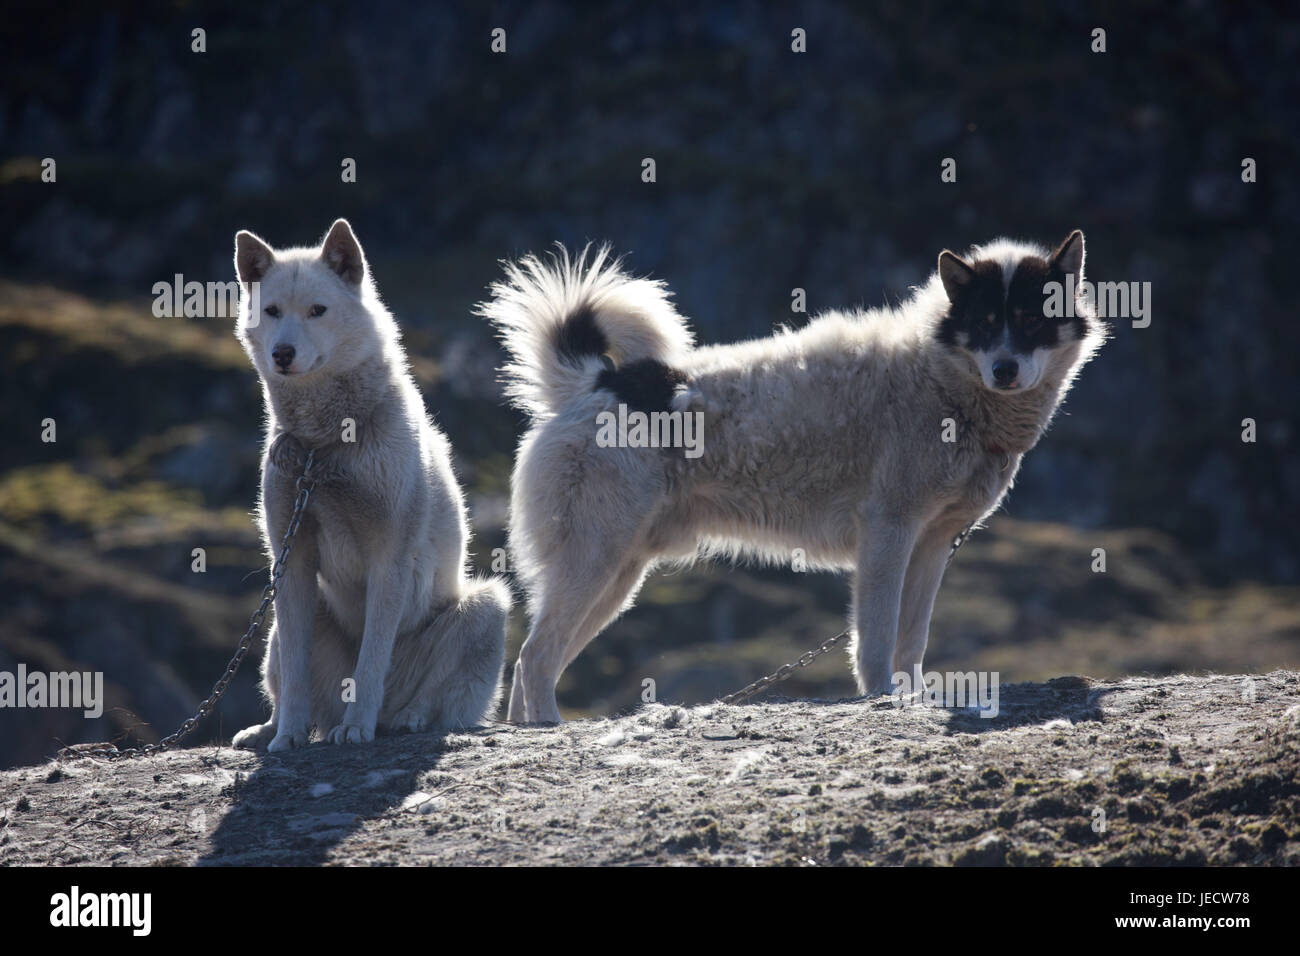 Greenland, Sisimiut, sled dogs, huskies, two, Western Greenland, rocks, animals, dogs, benefit animals, catenas, - Stock Image